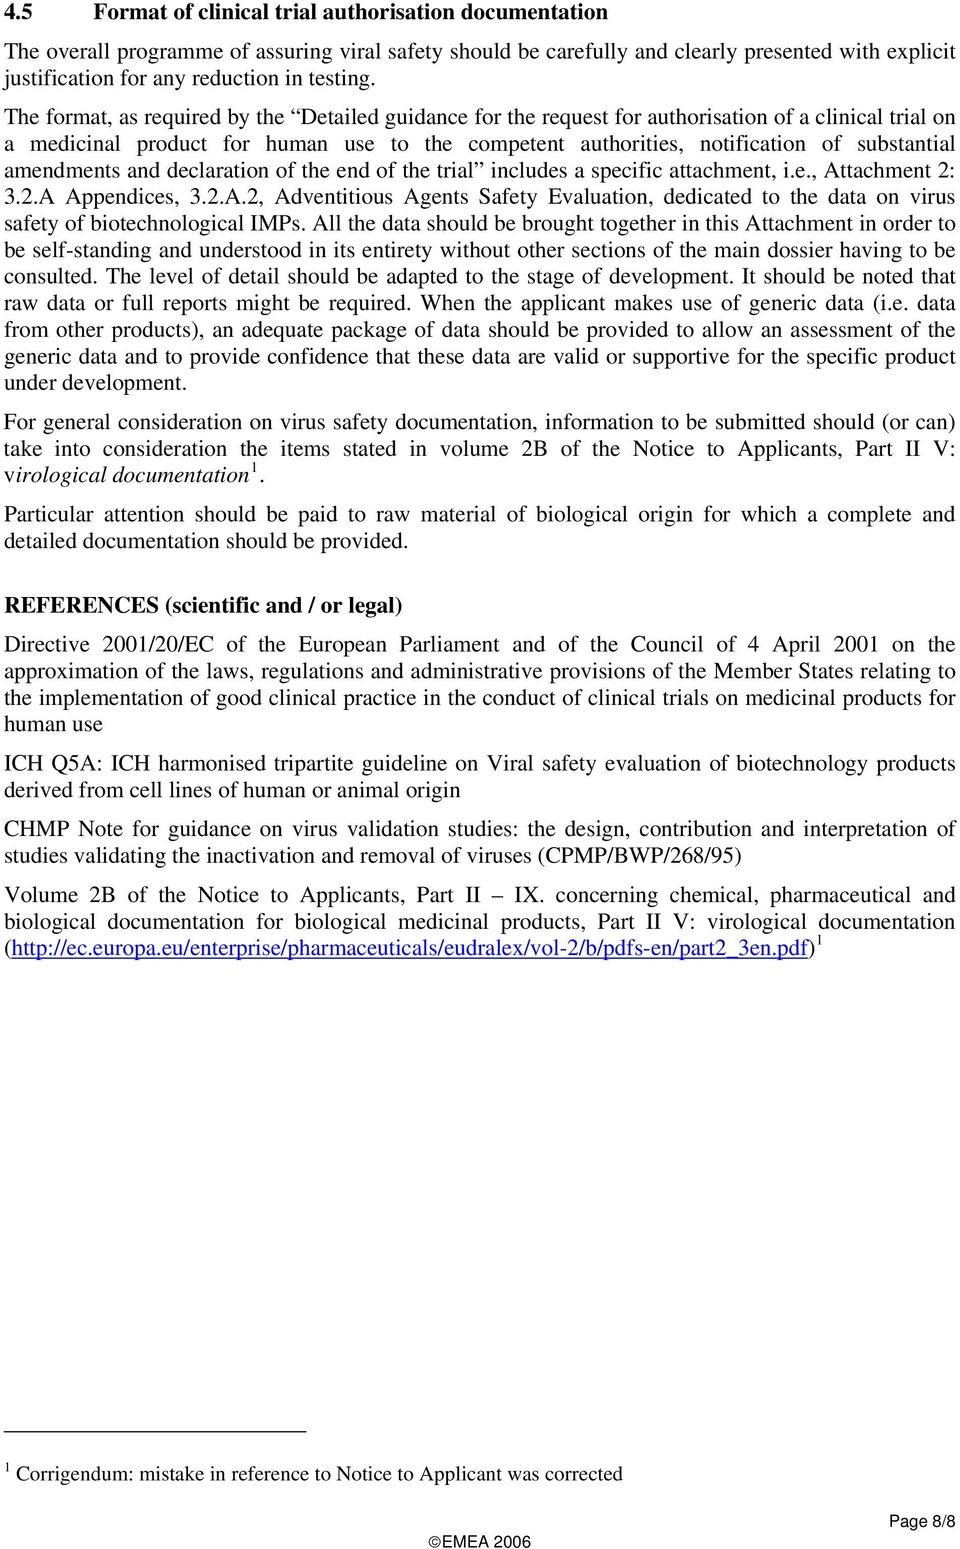 The format, as required by the Detailed guidance for the request for authorisation of a clinical trial on a medicinal product for human use to the competent authorities, notification of substantial